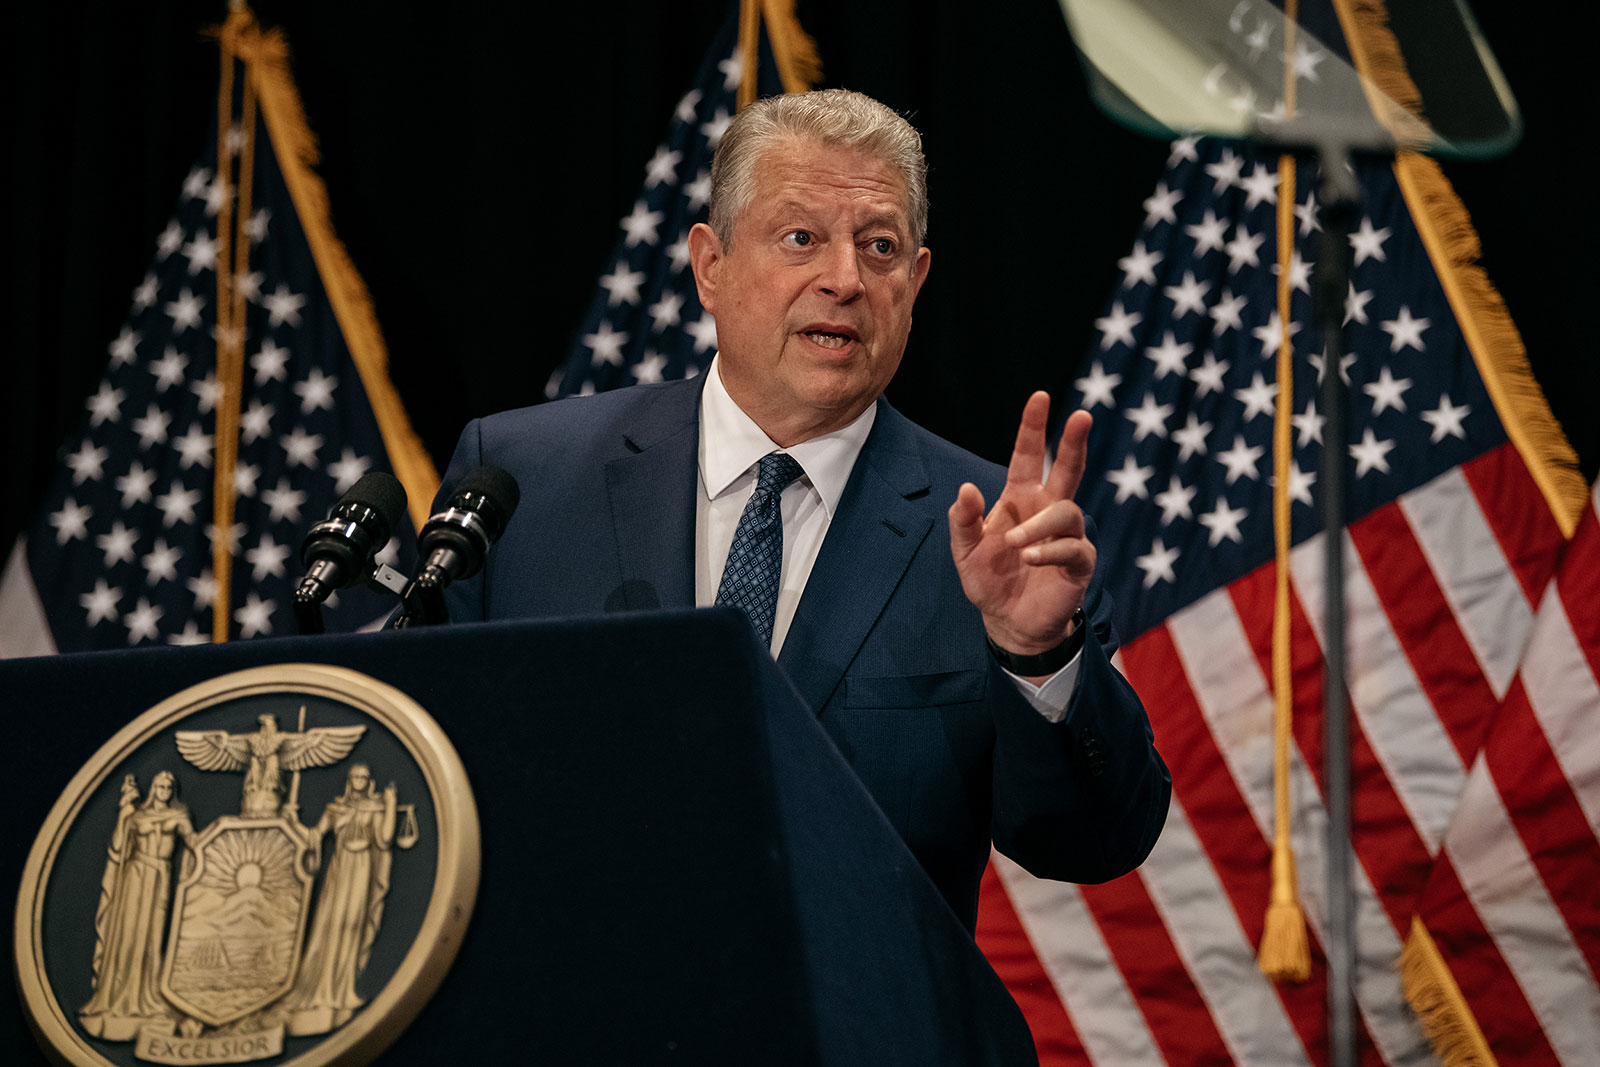 Former Vice President Al Gore delivers a speech on renewable energy in Manhattan in 2019.